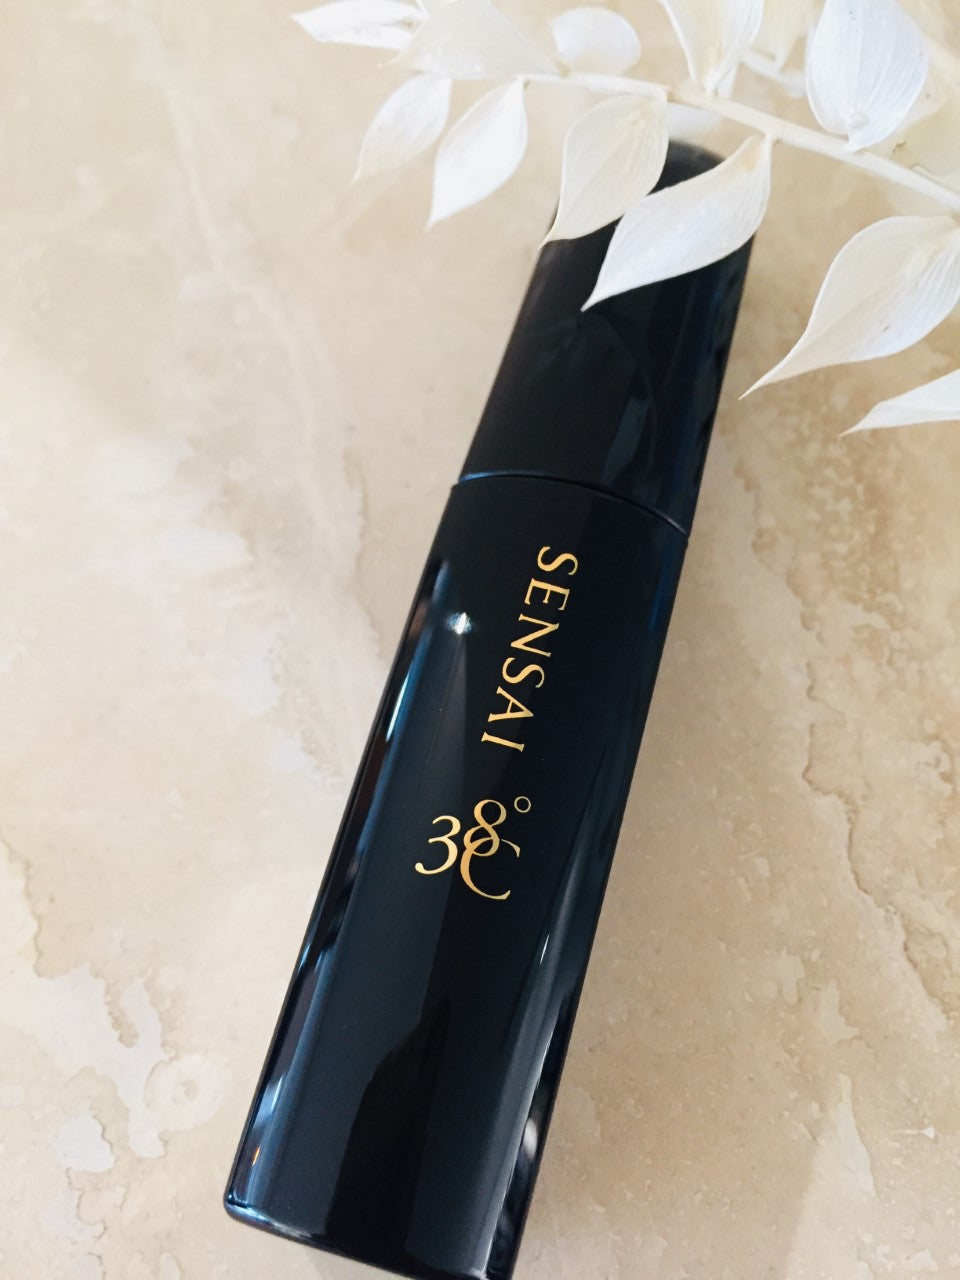 Sensai Lash Volumiser Mascara 38 C Black